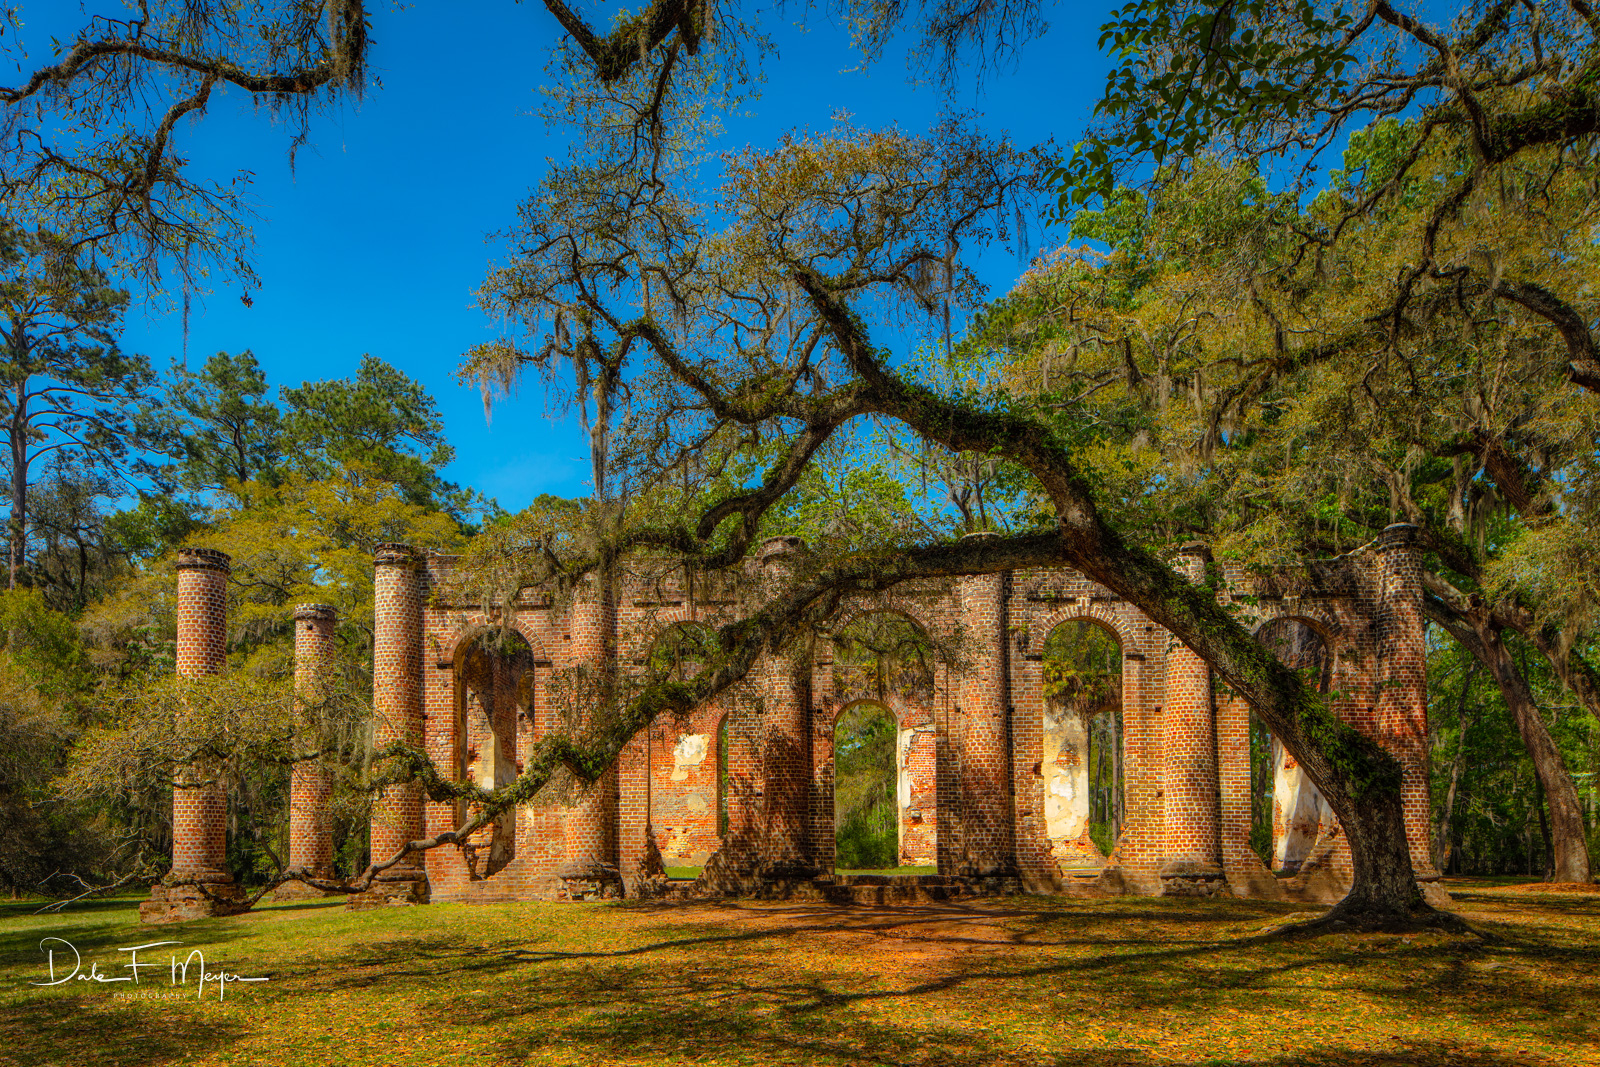 The Old Sheldon Church Ruins in the heart of the South Carolina low country. This church had its first service in 1757, and in...